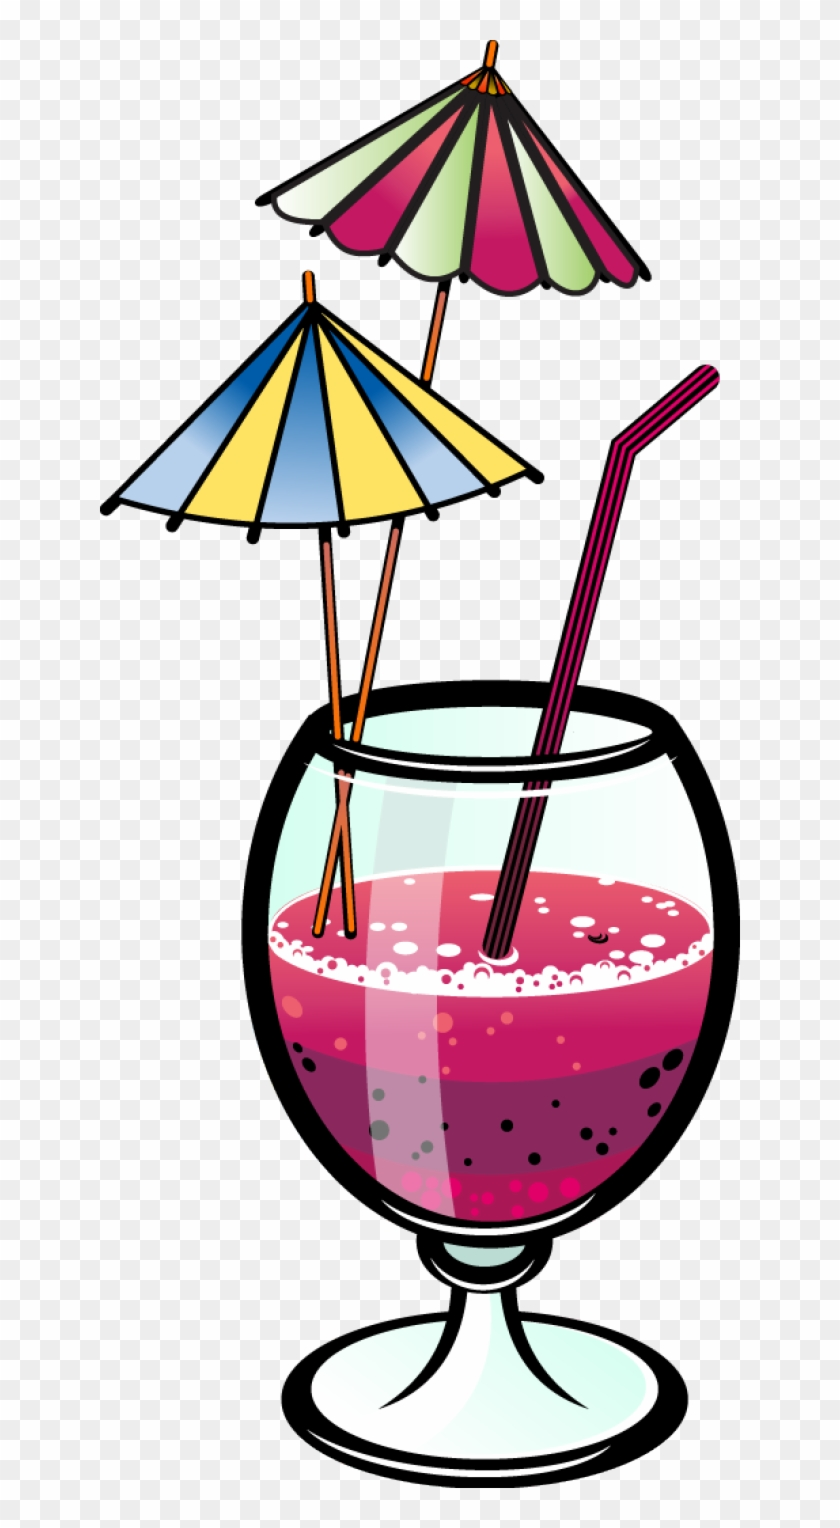 Drink Clipart Food And Beverage - Party Drinks Clip Art #28540